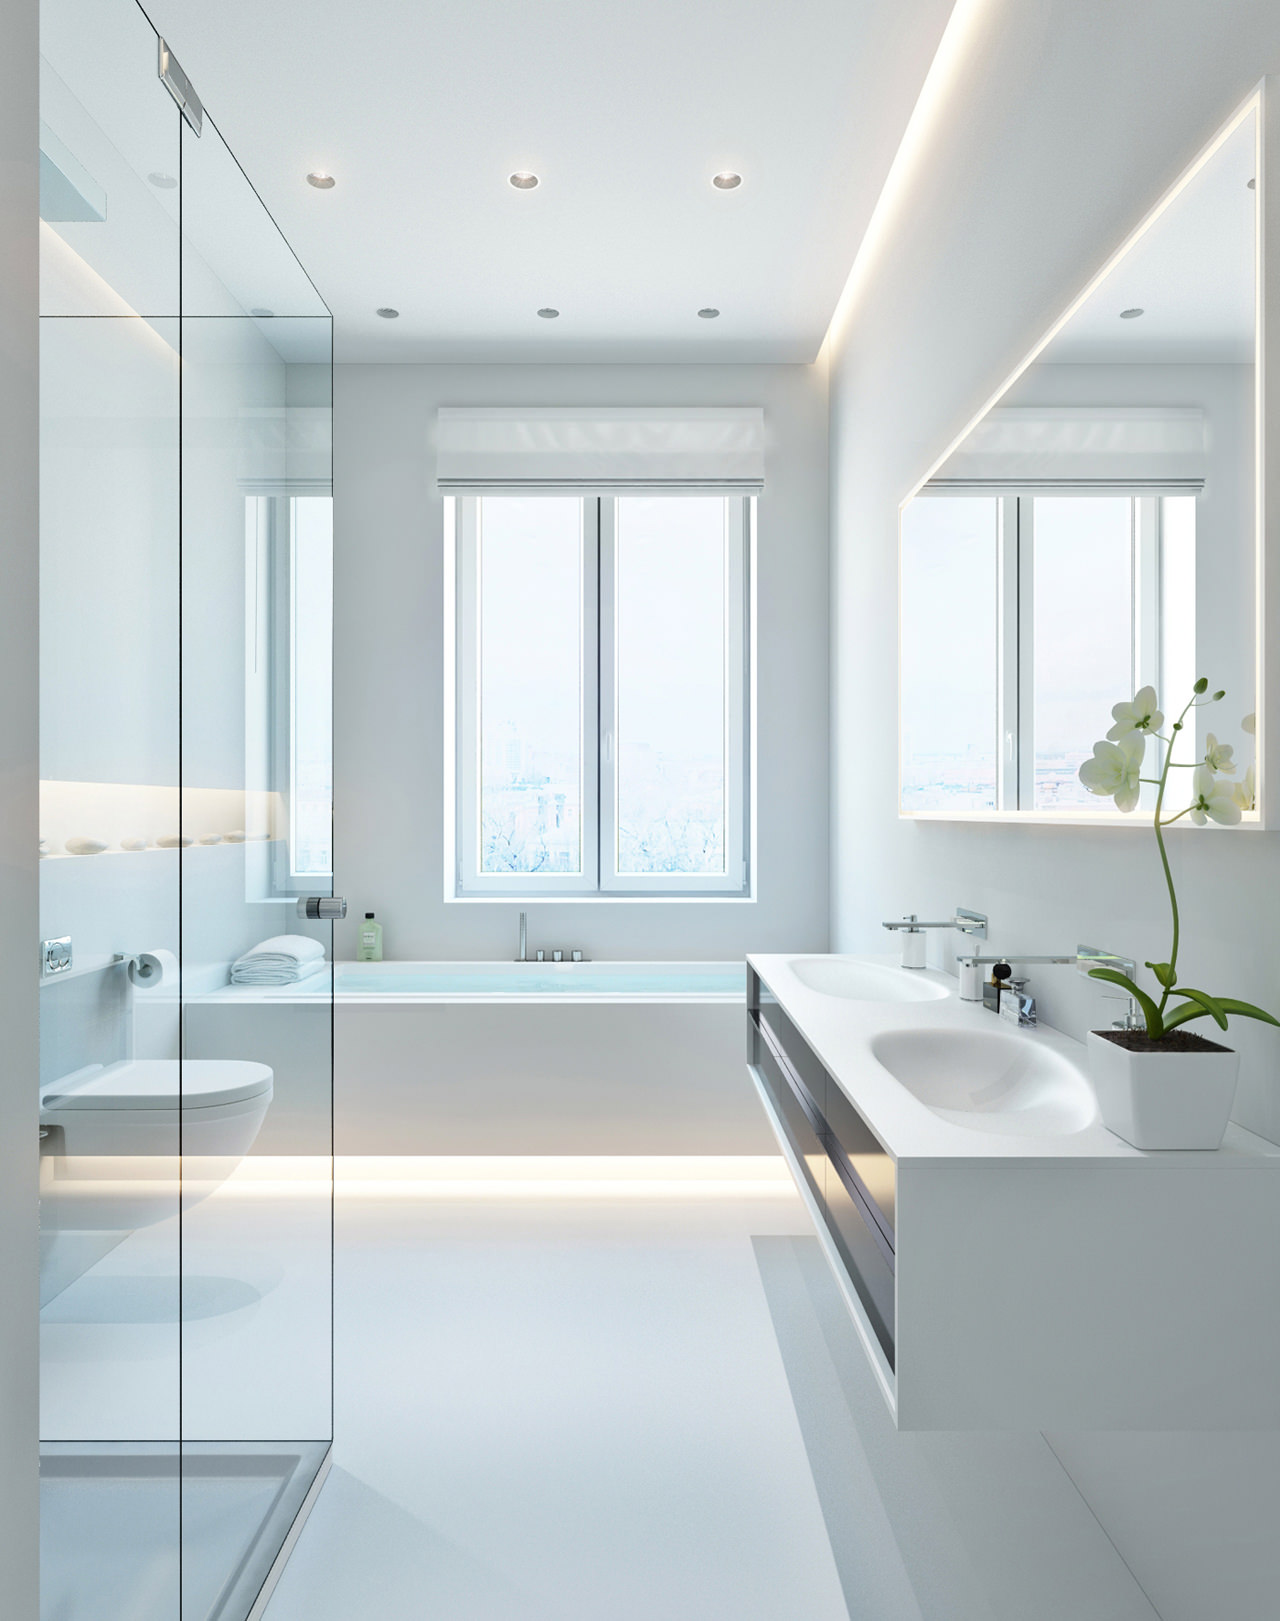 Modern White Bathroom Interior Design Ideas: modern design of bathroom